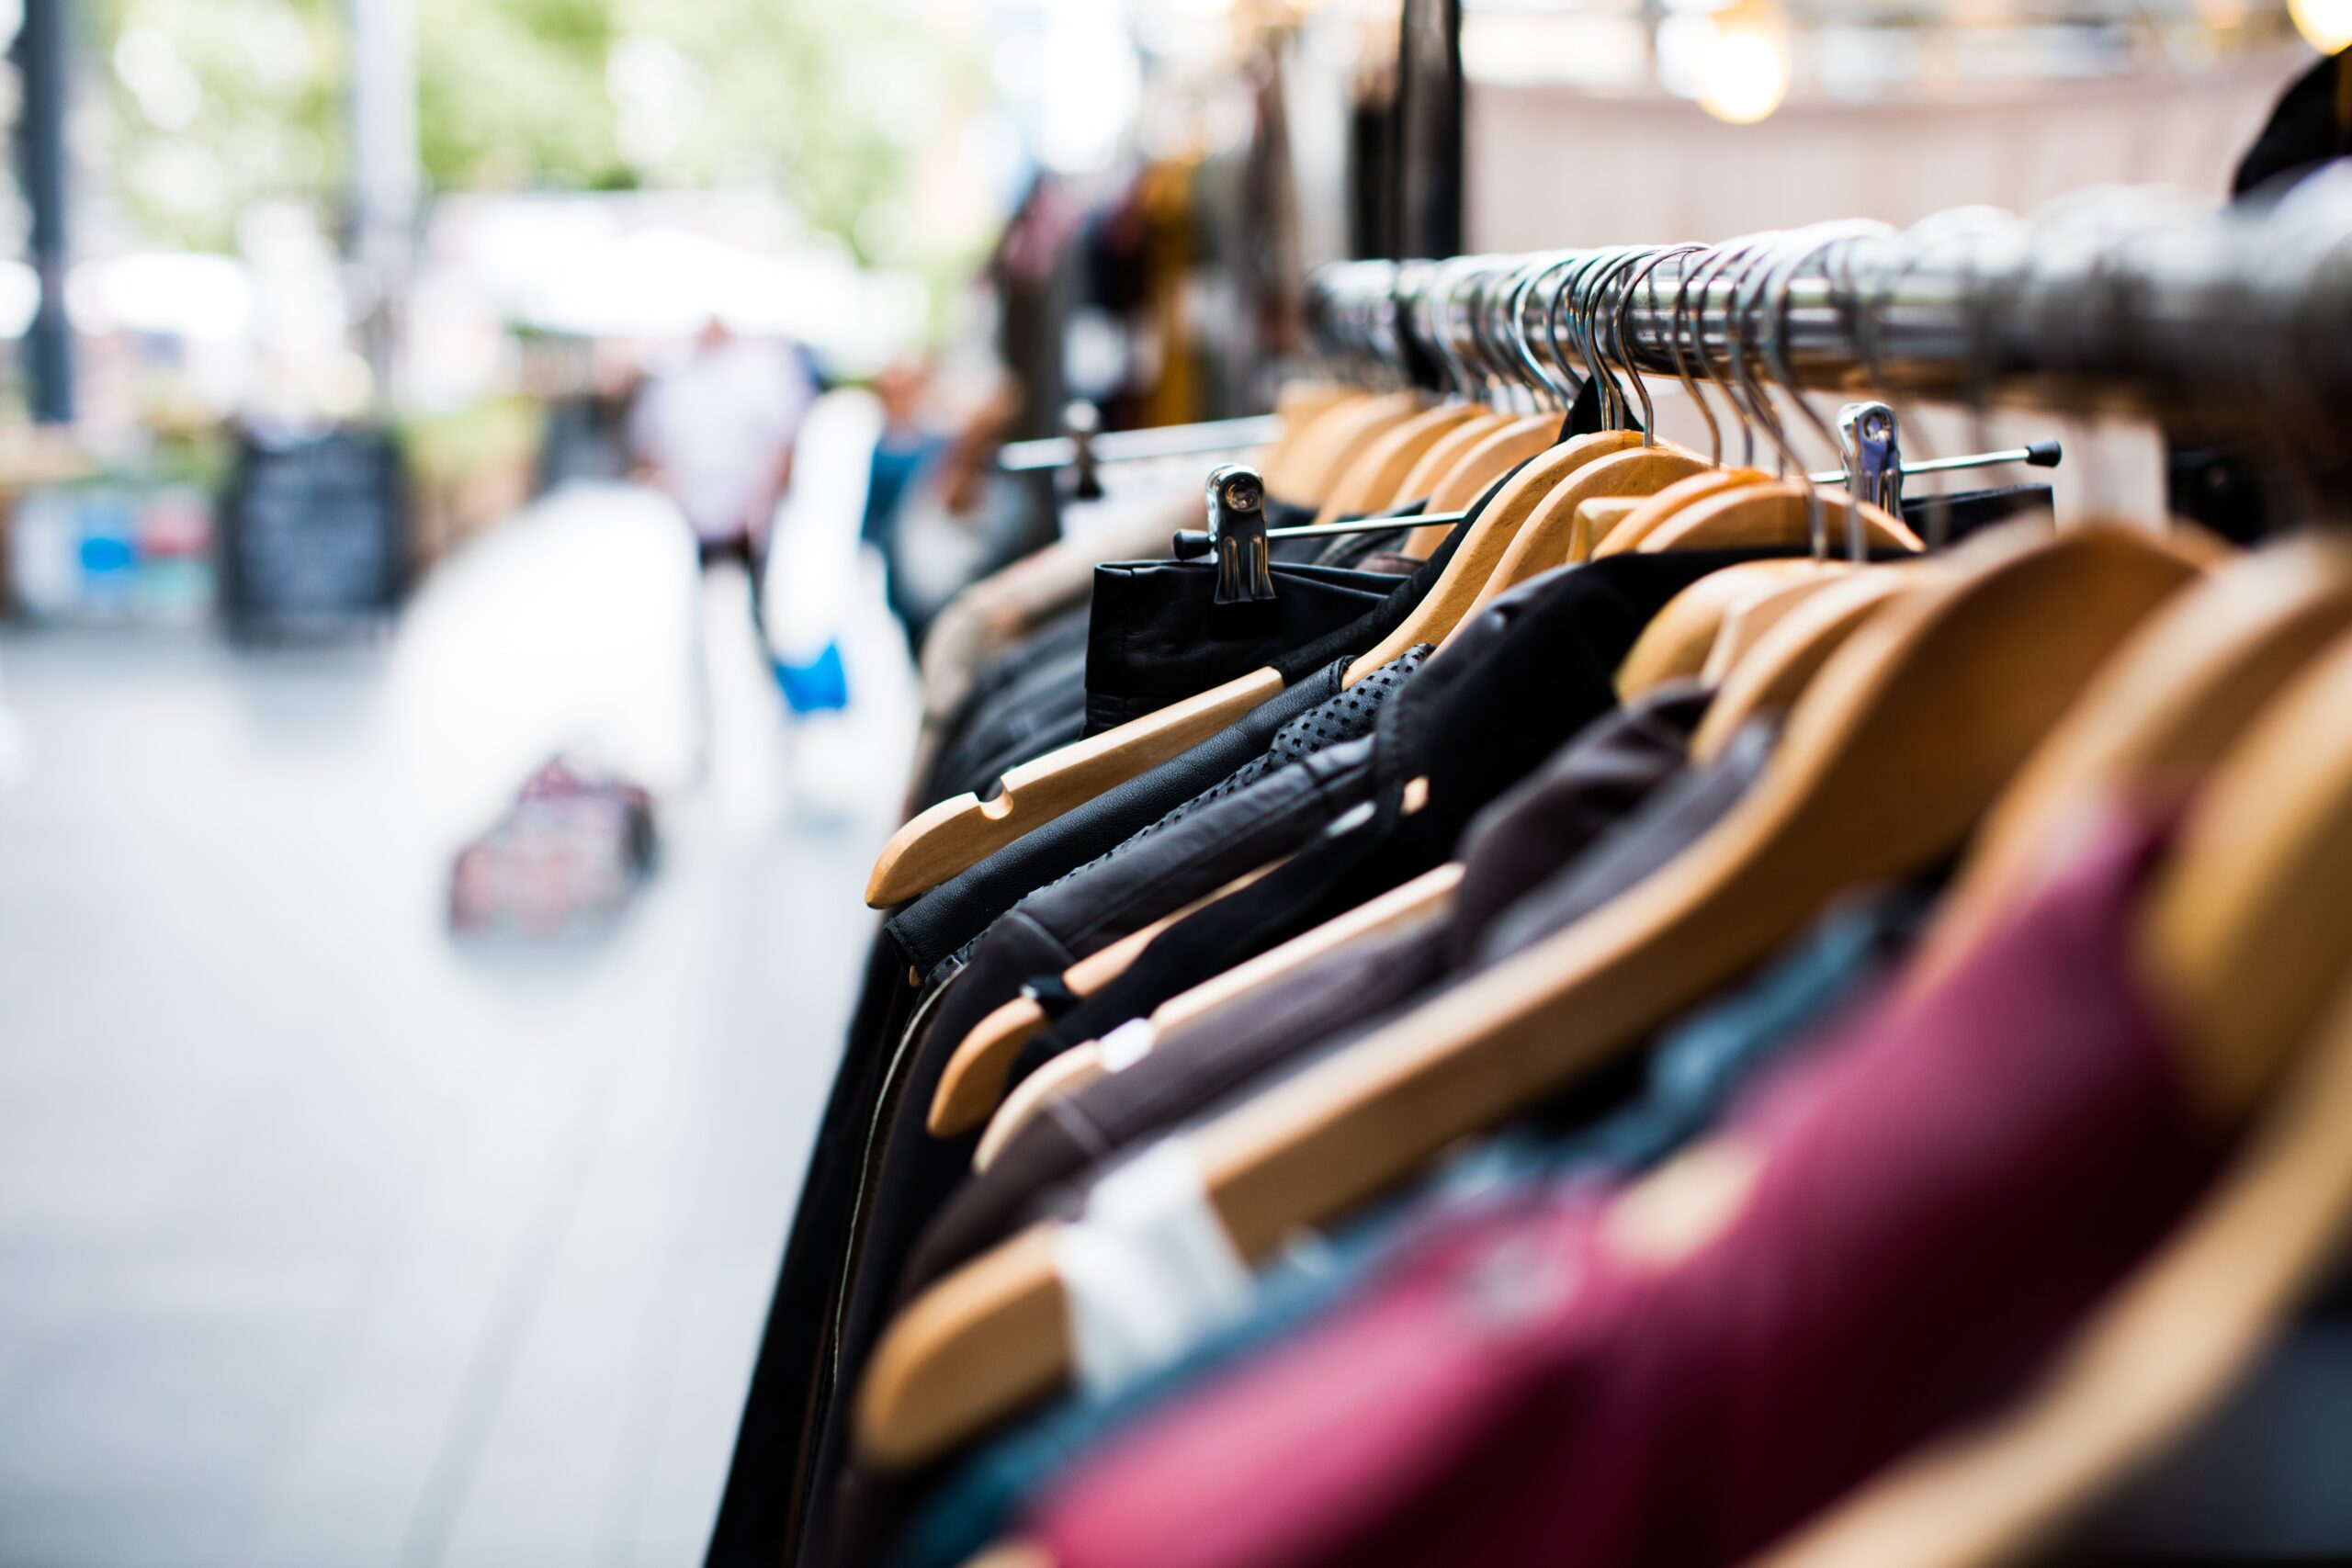 Buying Used? Here are 4 Ideas for Trying Secondhand